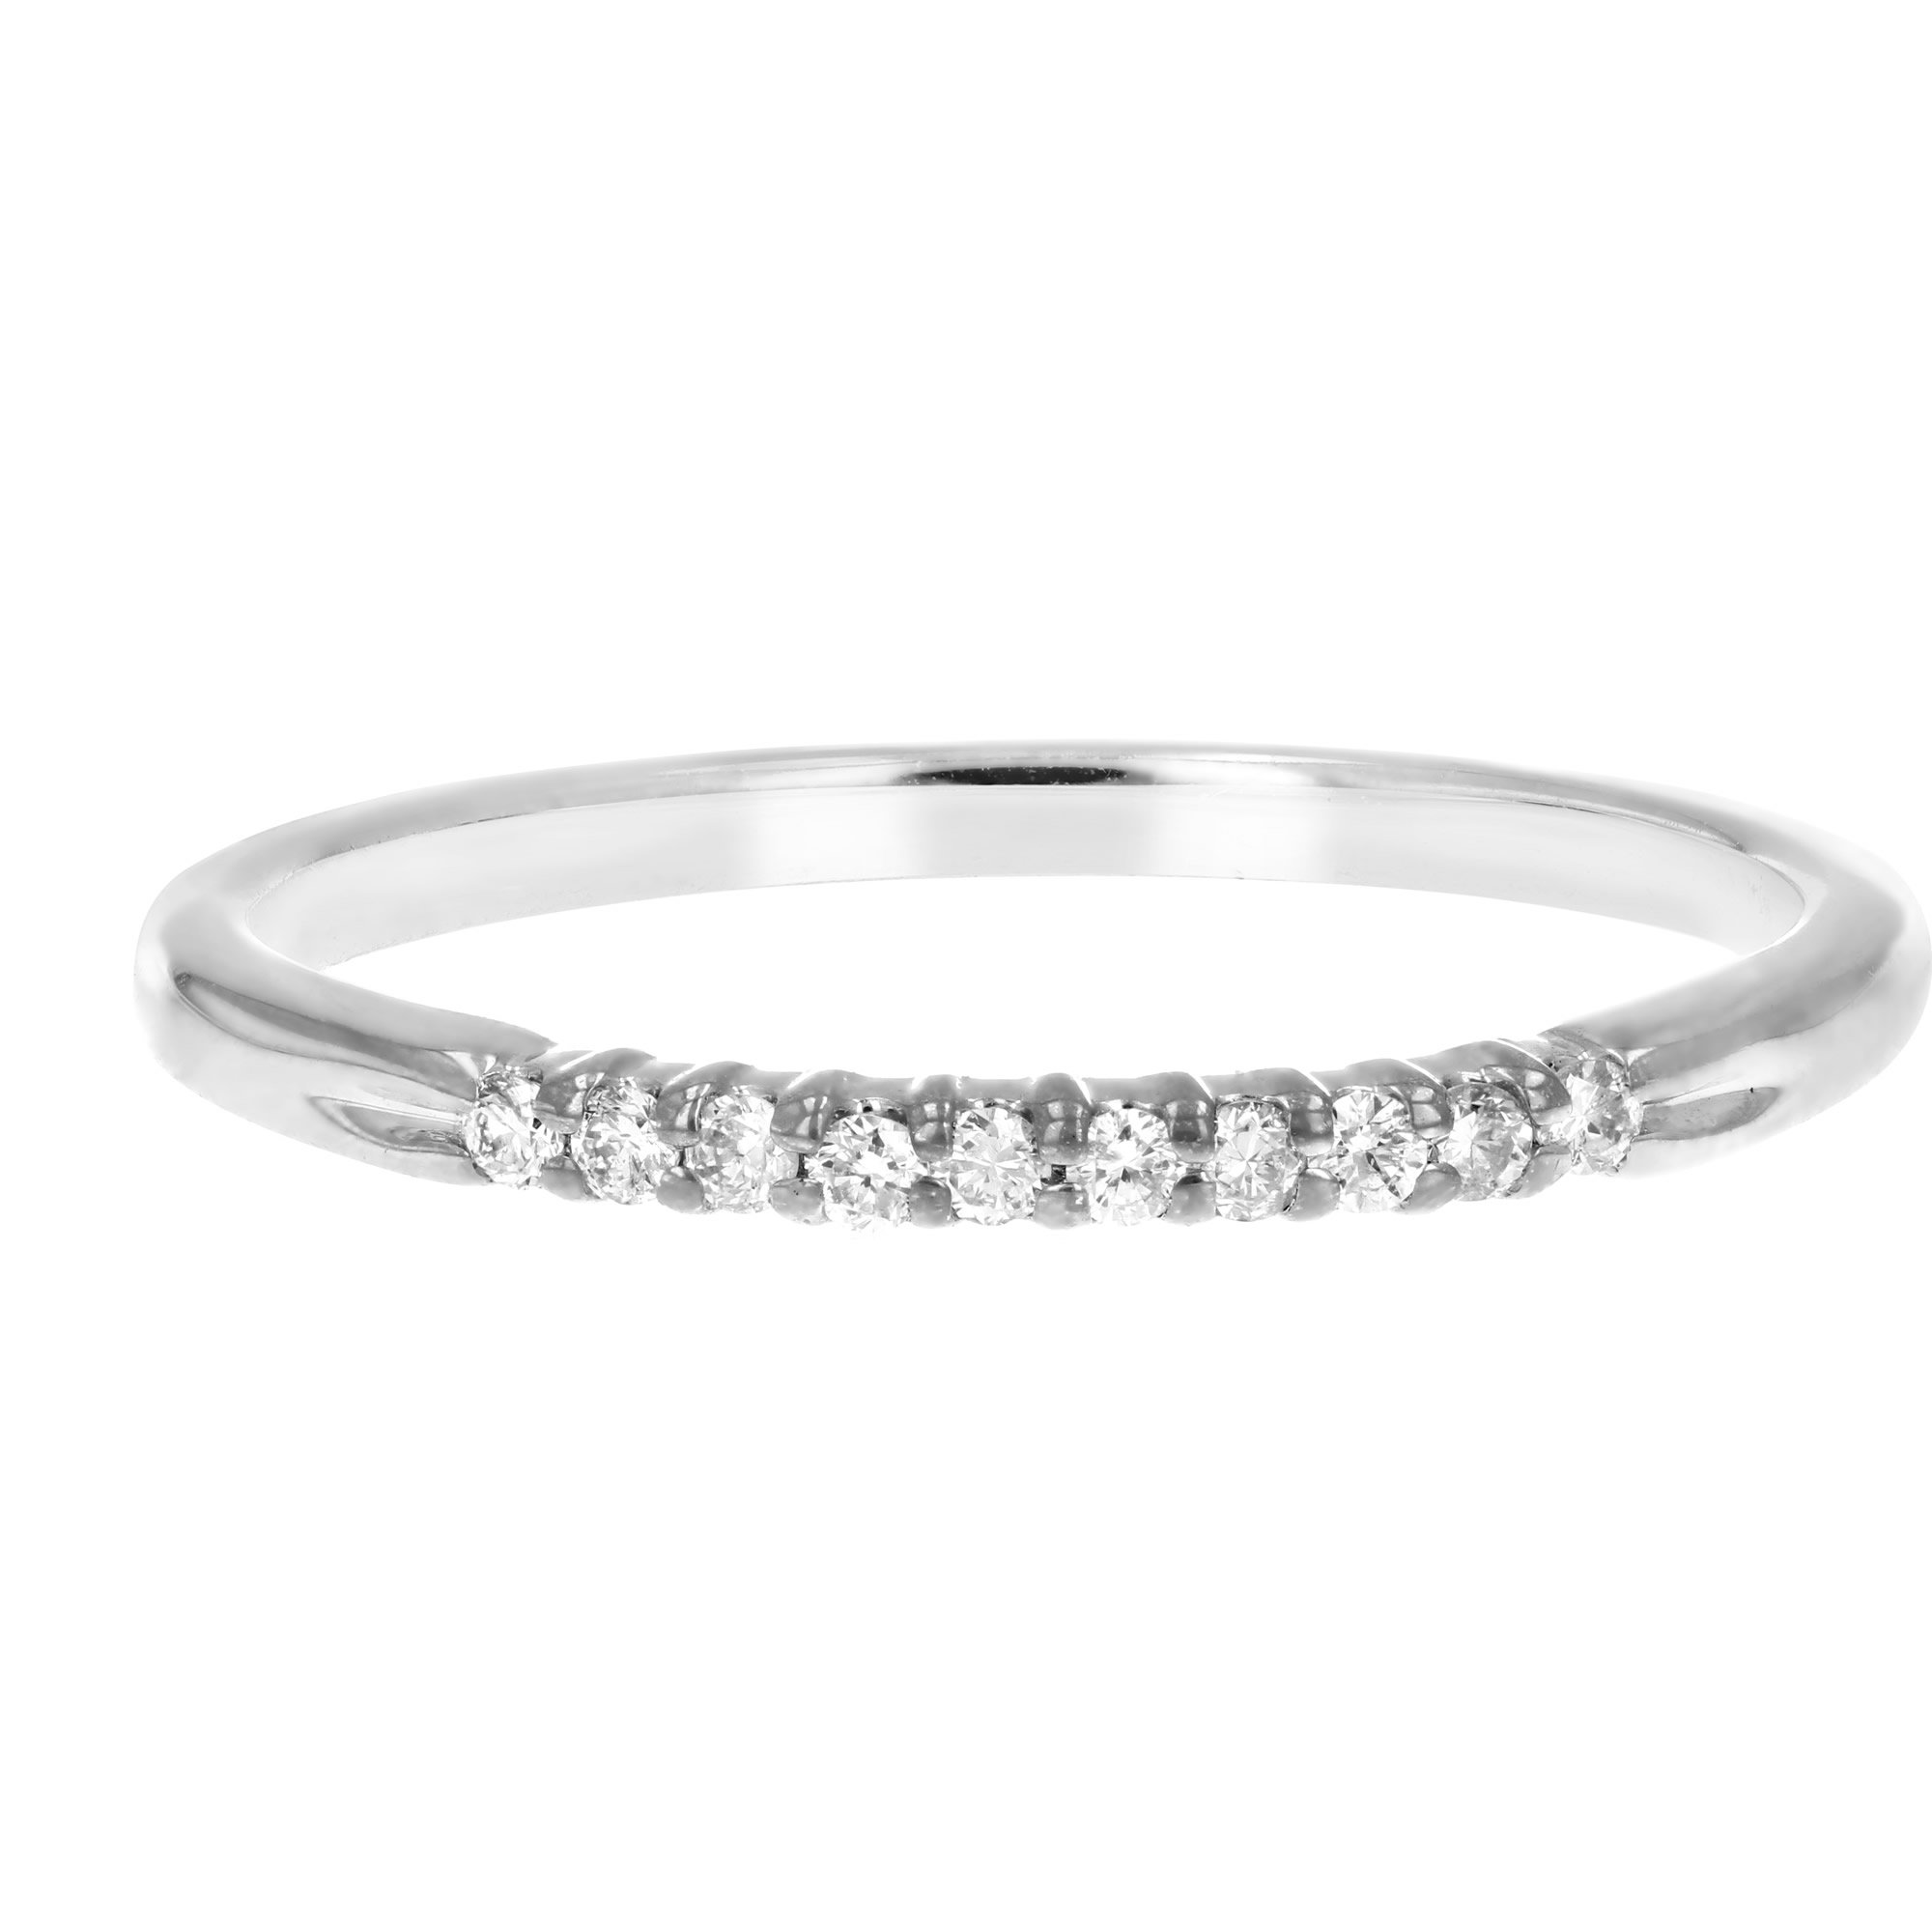 1/10 ctw Petite Diamond Wedding Band in 10K White Gold In Size 7 by Vir Jewels (Image #1)